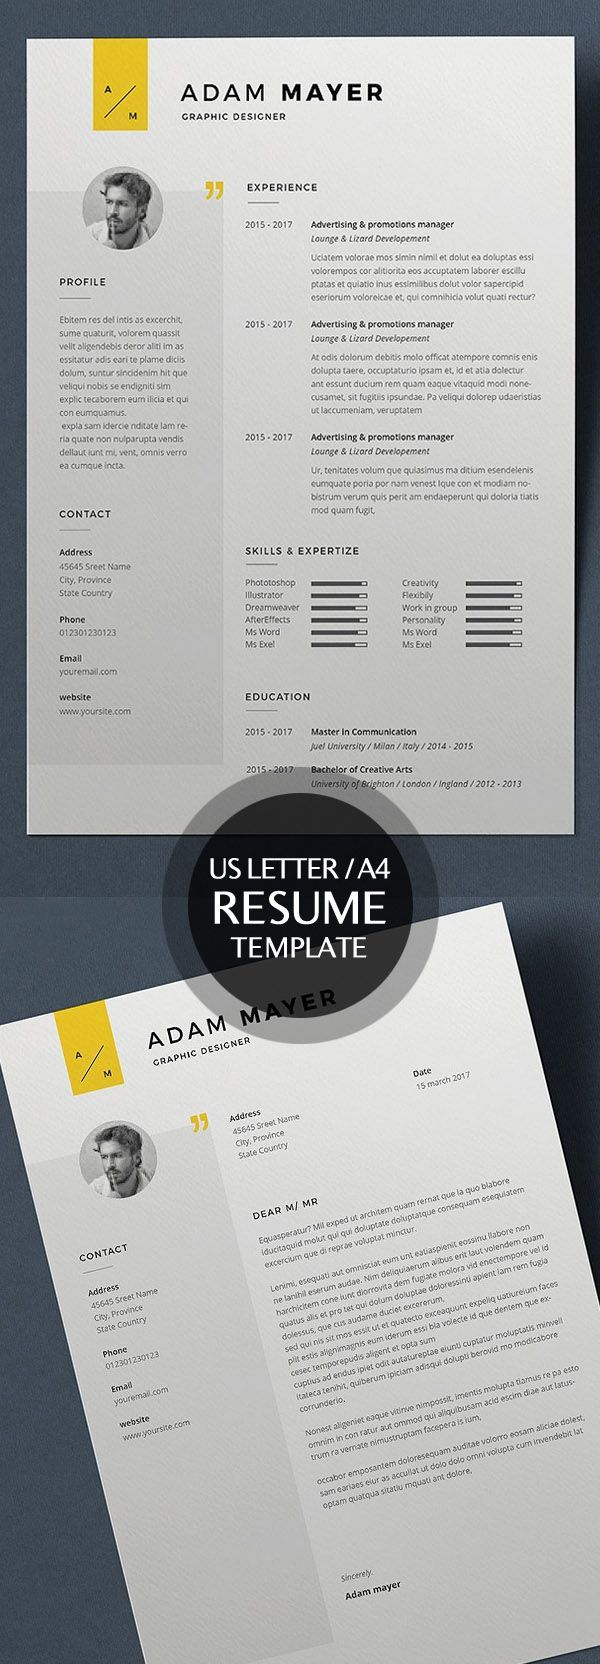 32 best CV images on Pinterest | Resume templates, Cv template and ...